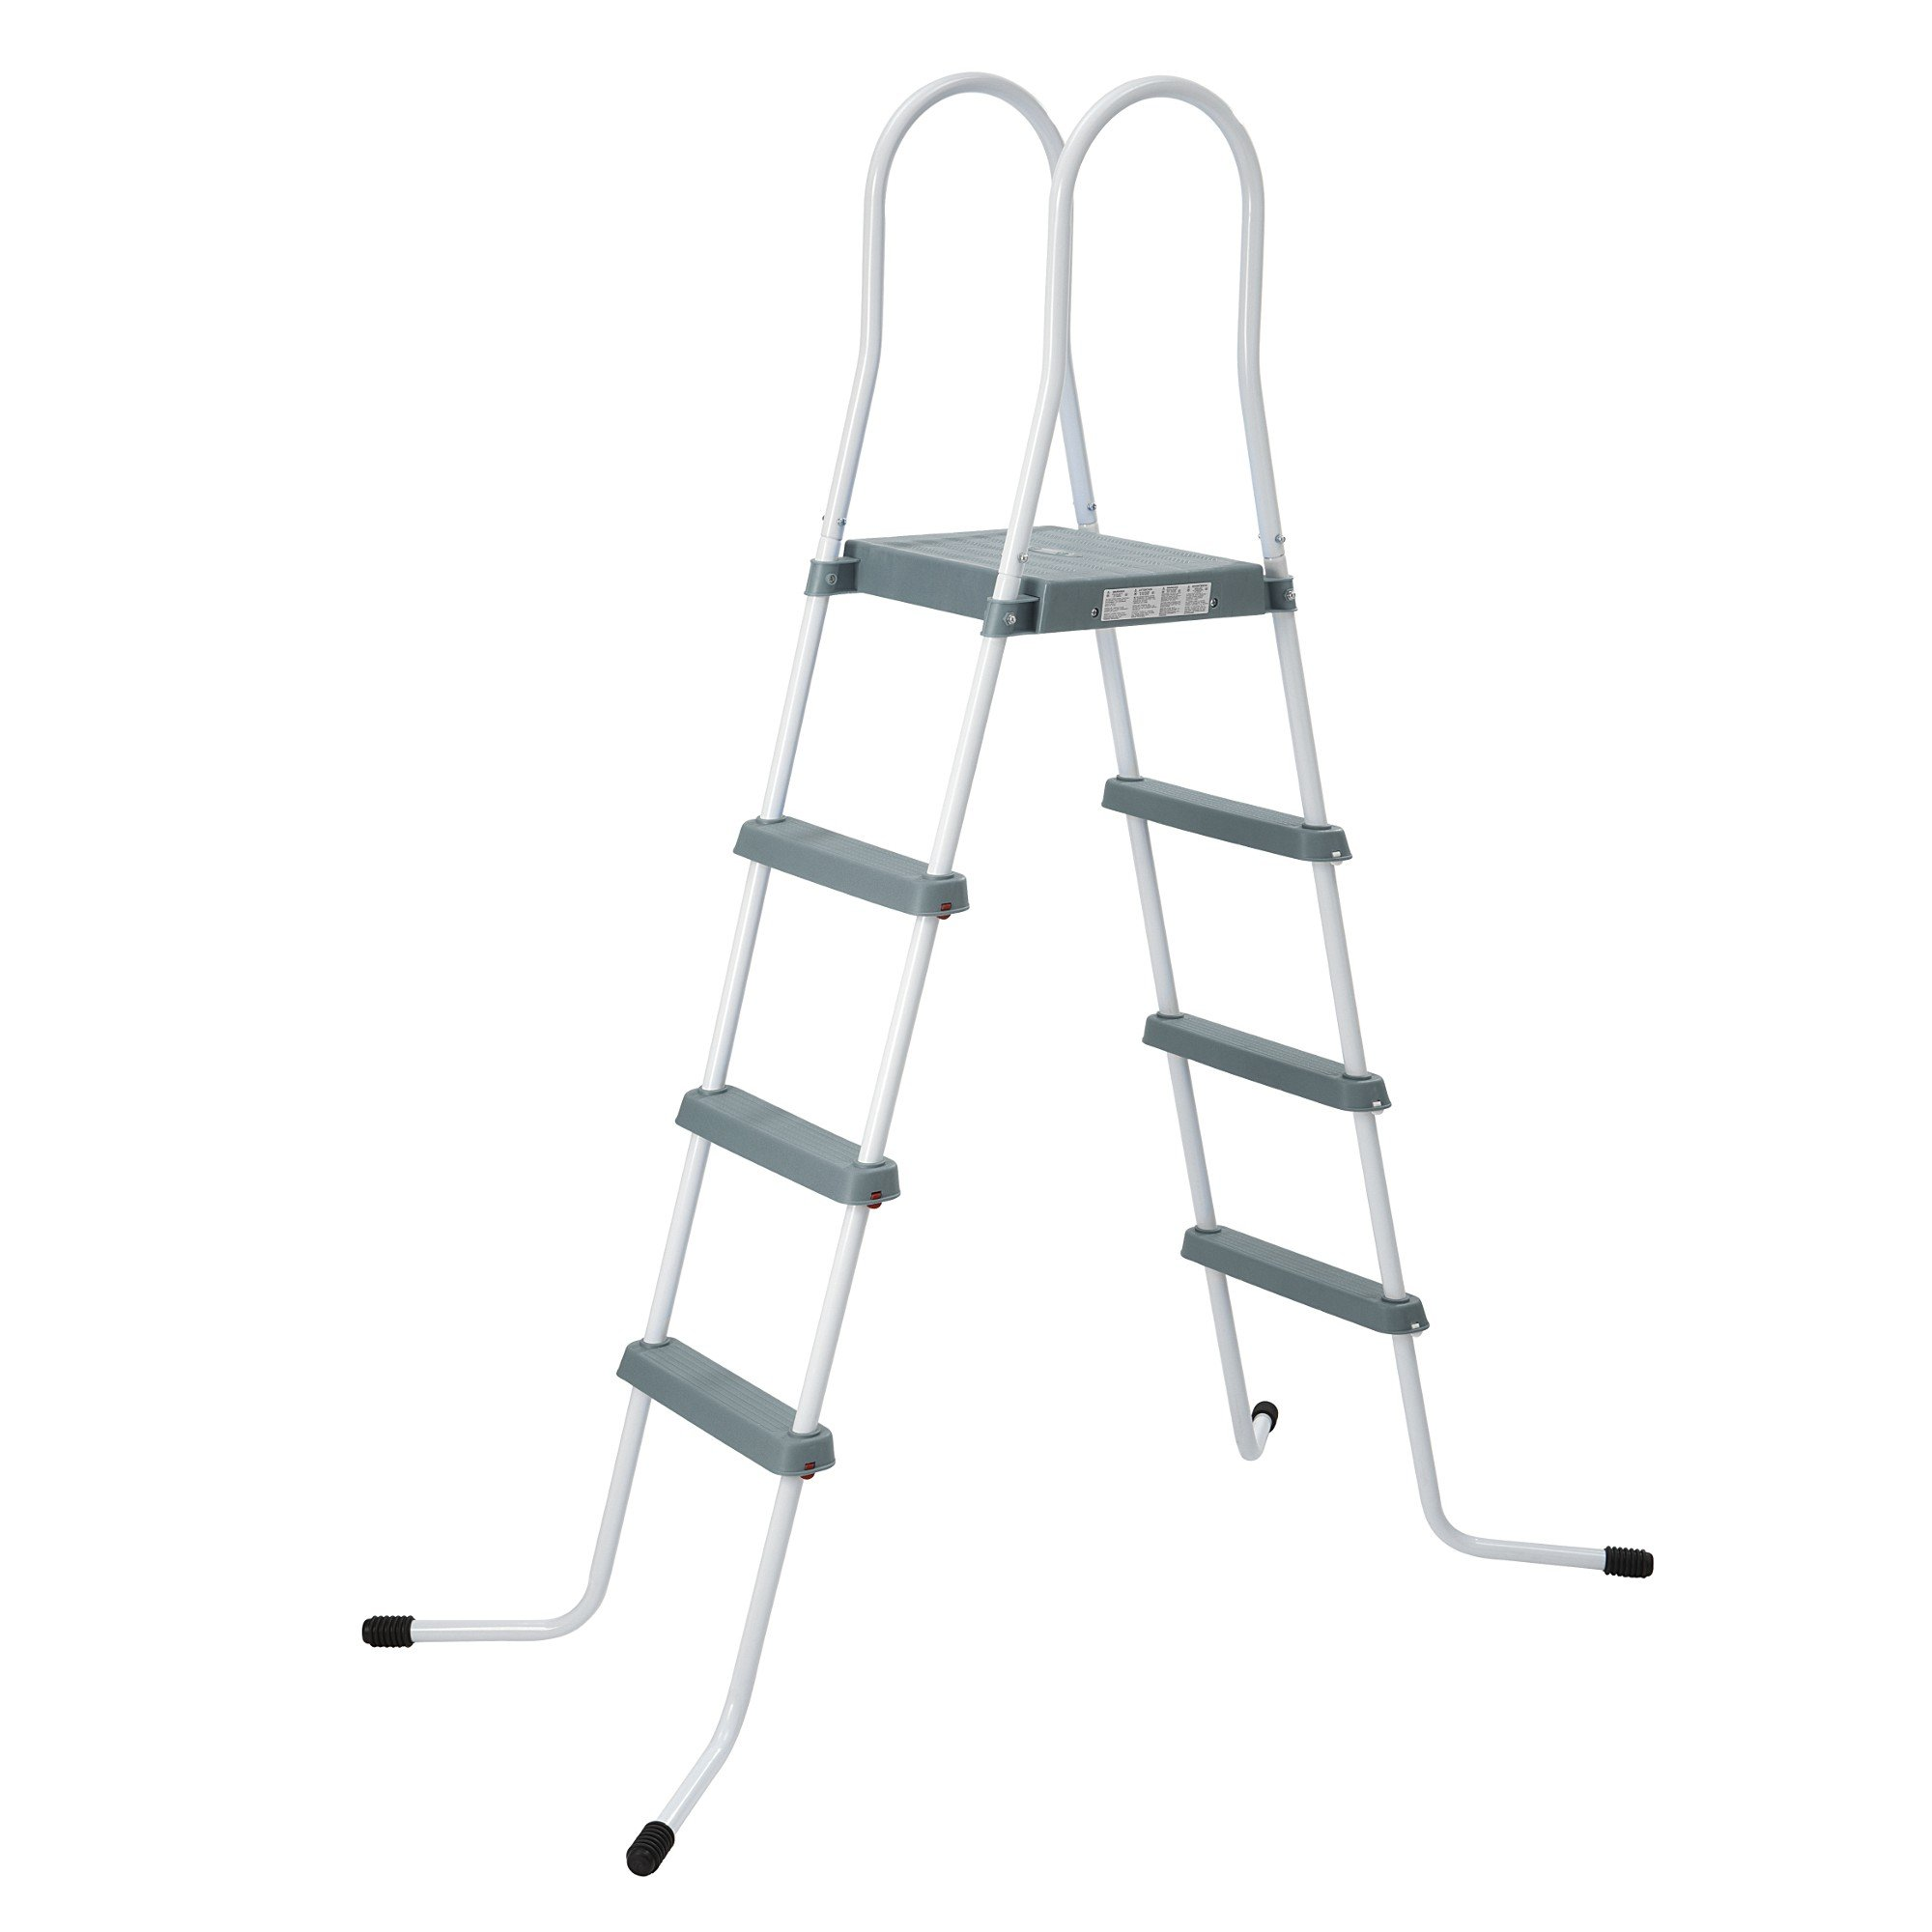 Jilong 4-122 Pool Ladder Grey - Escalera de 4 peldaños, para Piscinas de hasta 122 cm: Amazon.es: Jardín